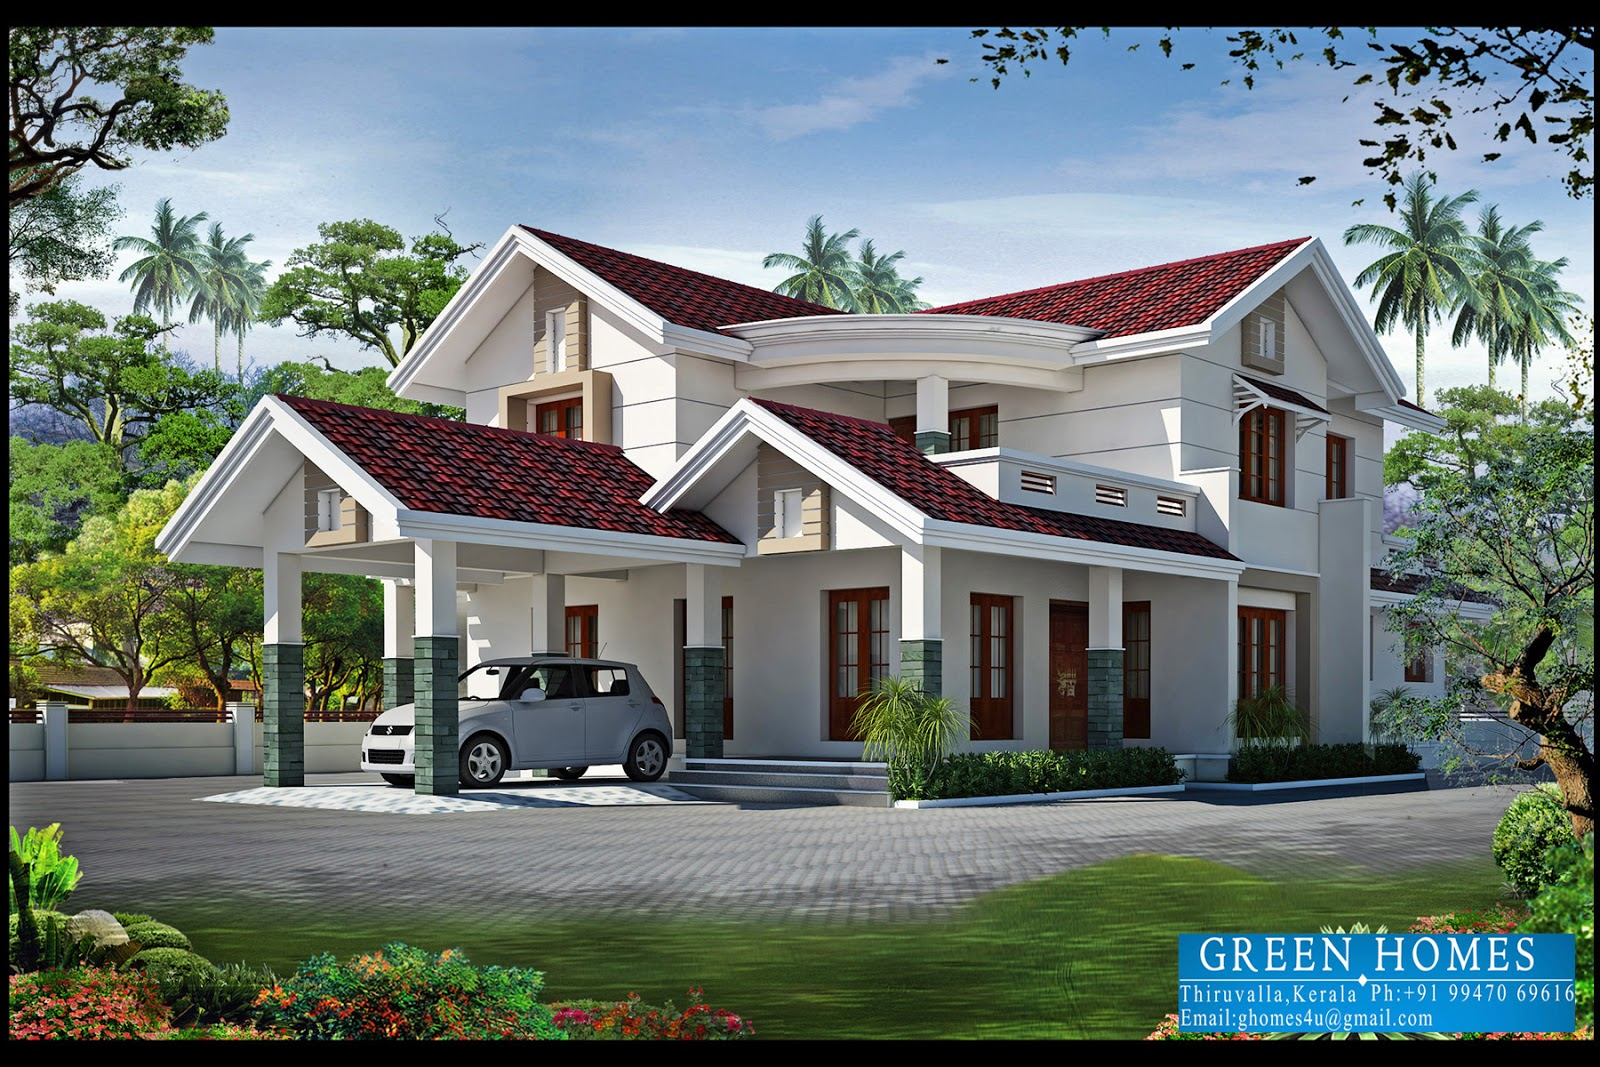 Green homes 4bhk kerala home design 2550 for Latest house designs 2015